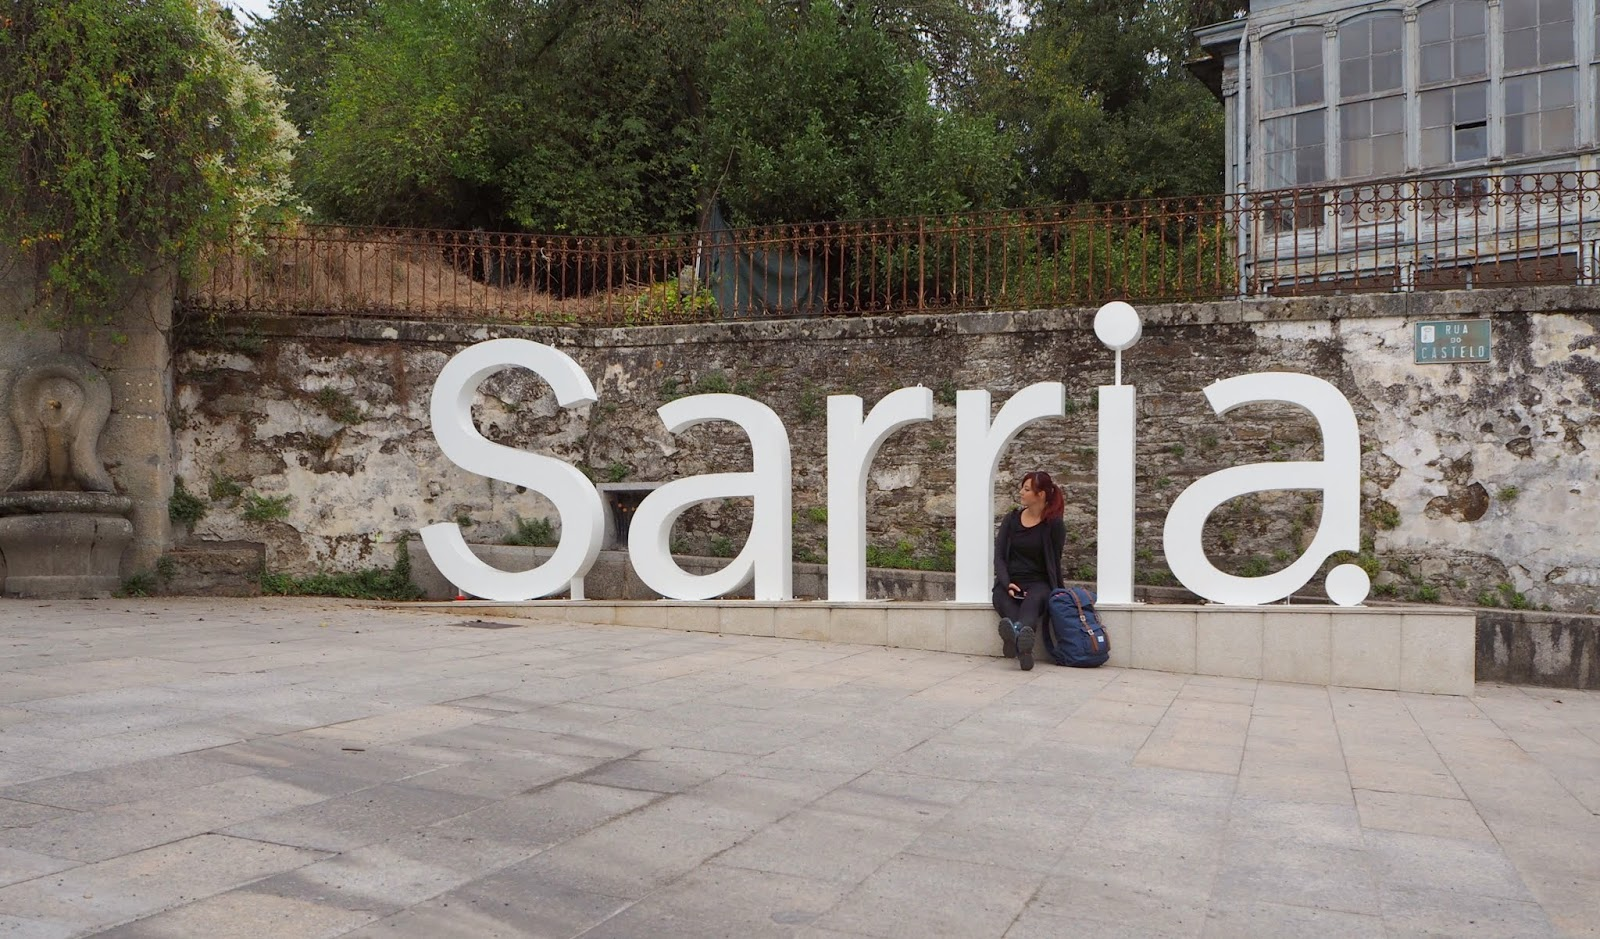 sarria welcome sign on the camino